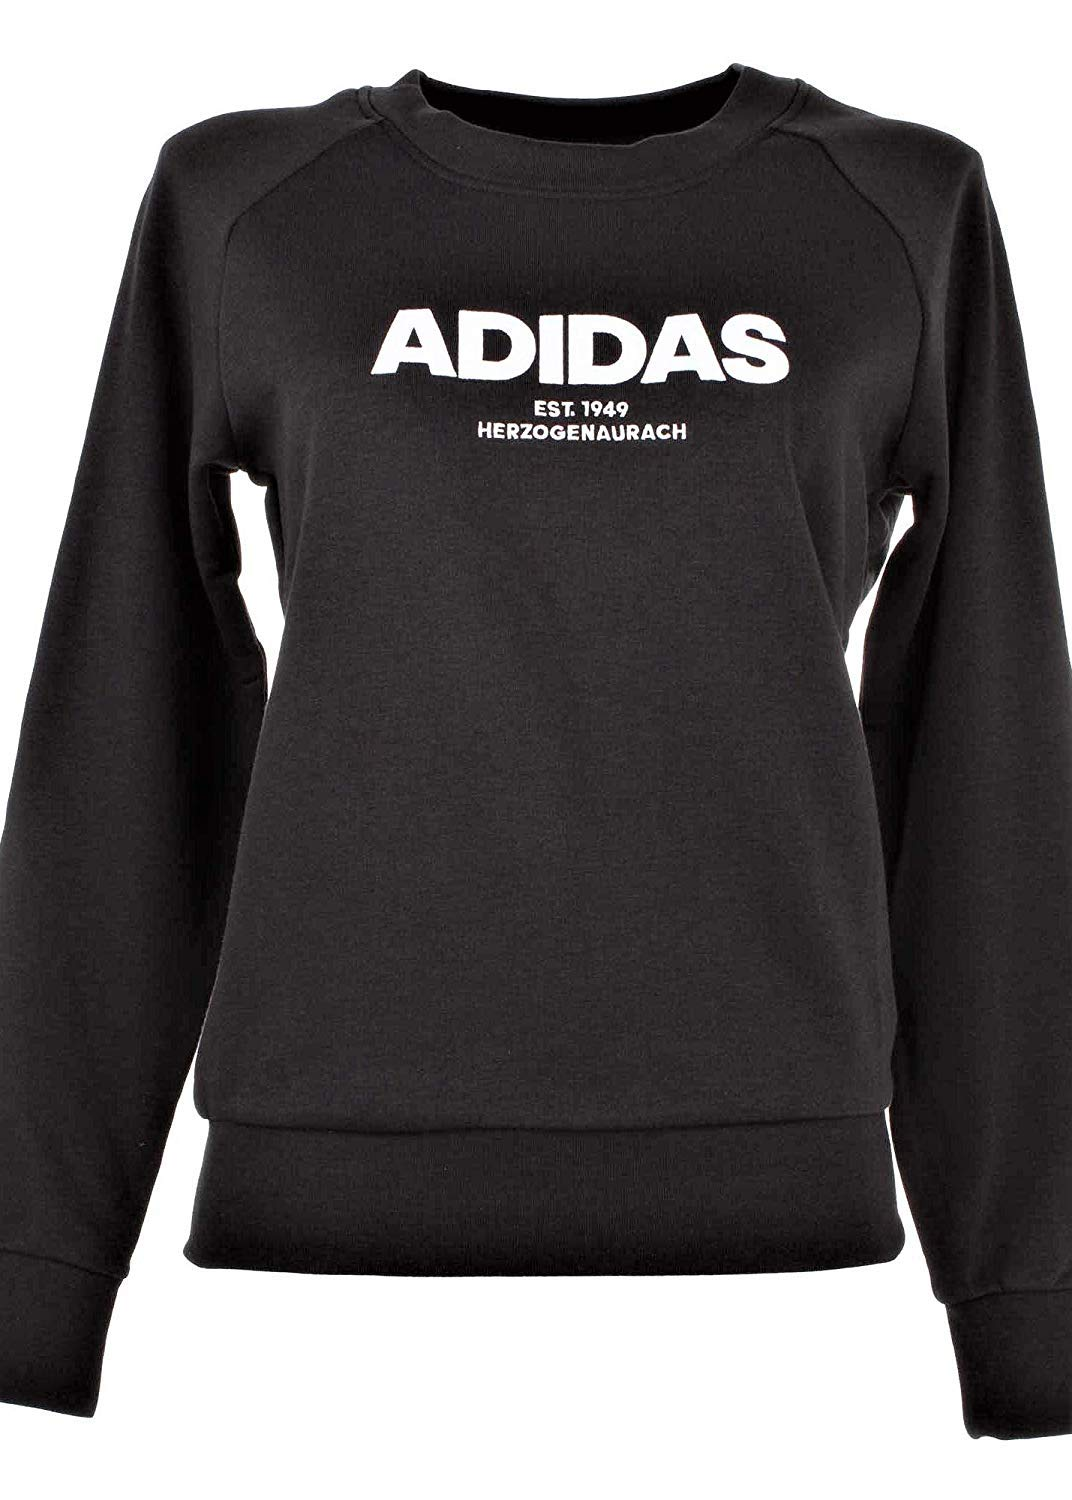 adidas Women's Essentials Allcap Sports Sweater, Variety (Black, XL) by adidas